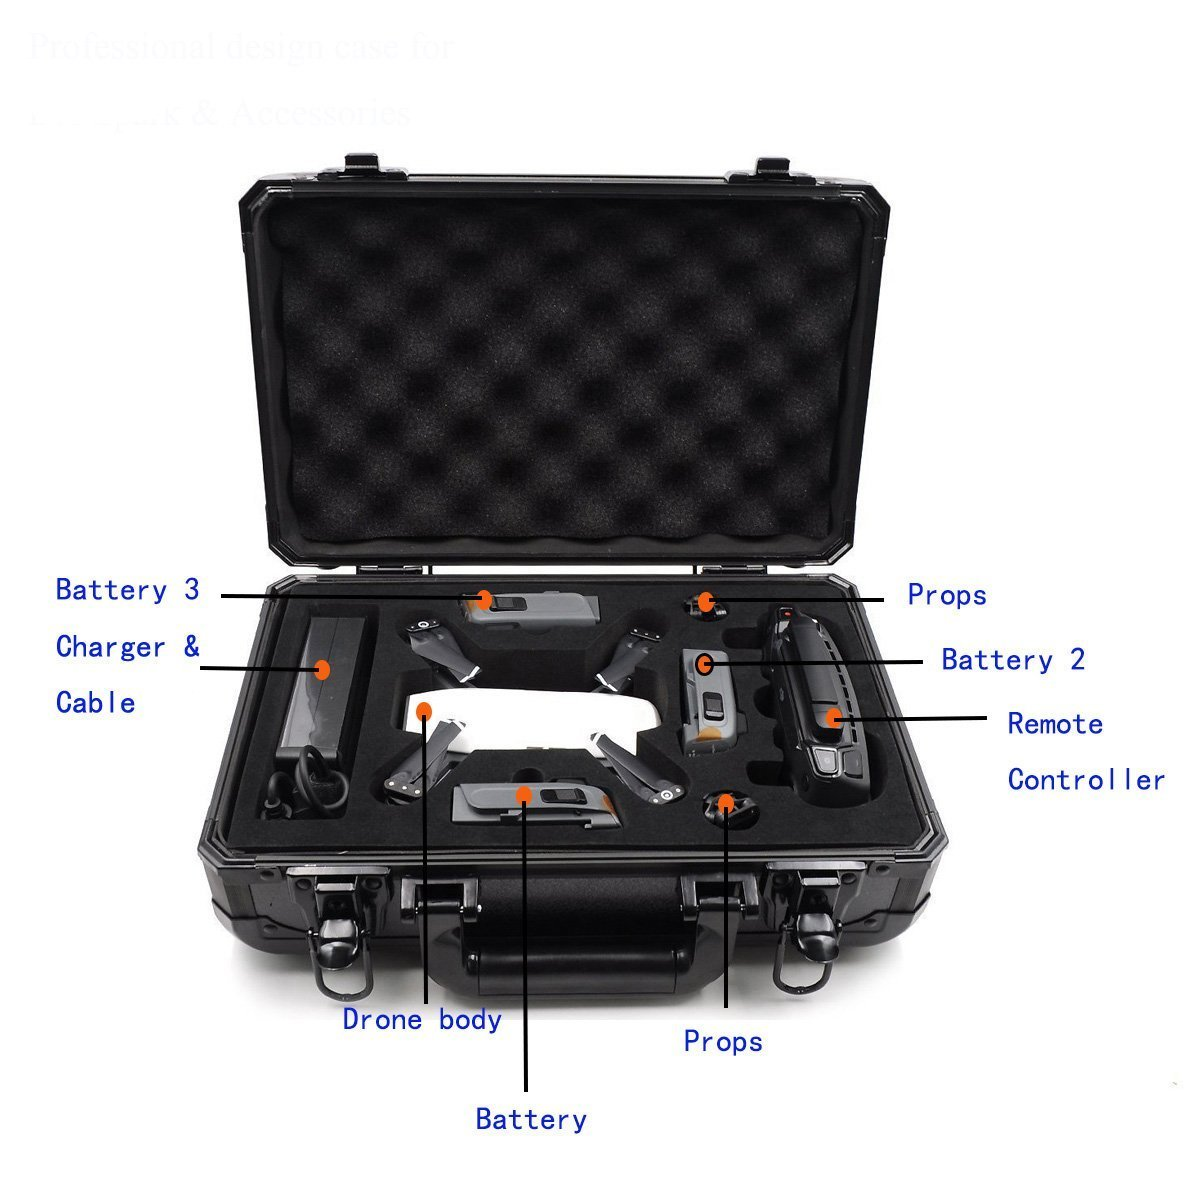 Hobby-Ace DJI Spark Drone Carrying Case by Travel Storage Case Bag fit for Spark Accessories Remote Controller and 3 Batteries,Propellers,Battery Charger and other accessories by Snotra Shop (Image #2)